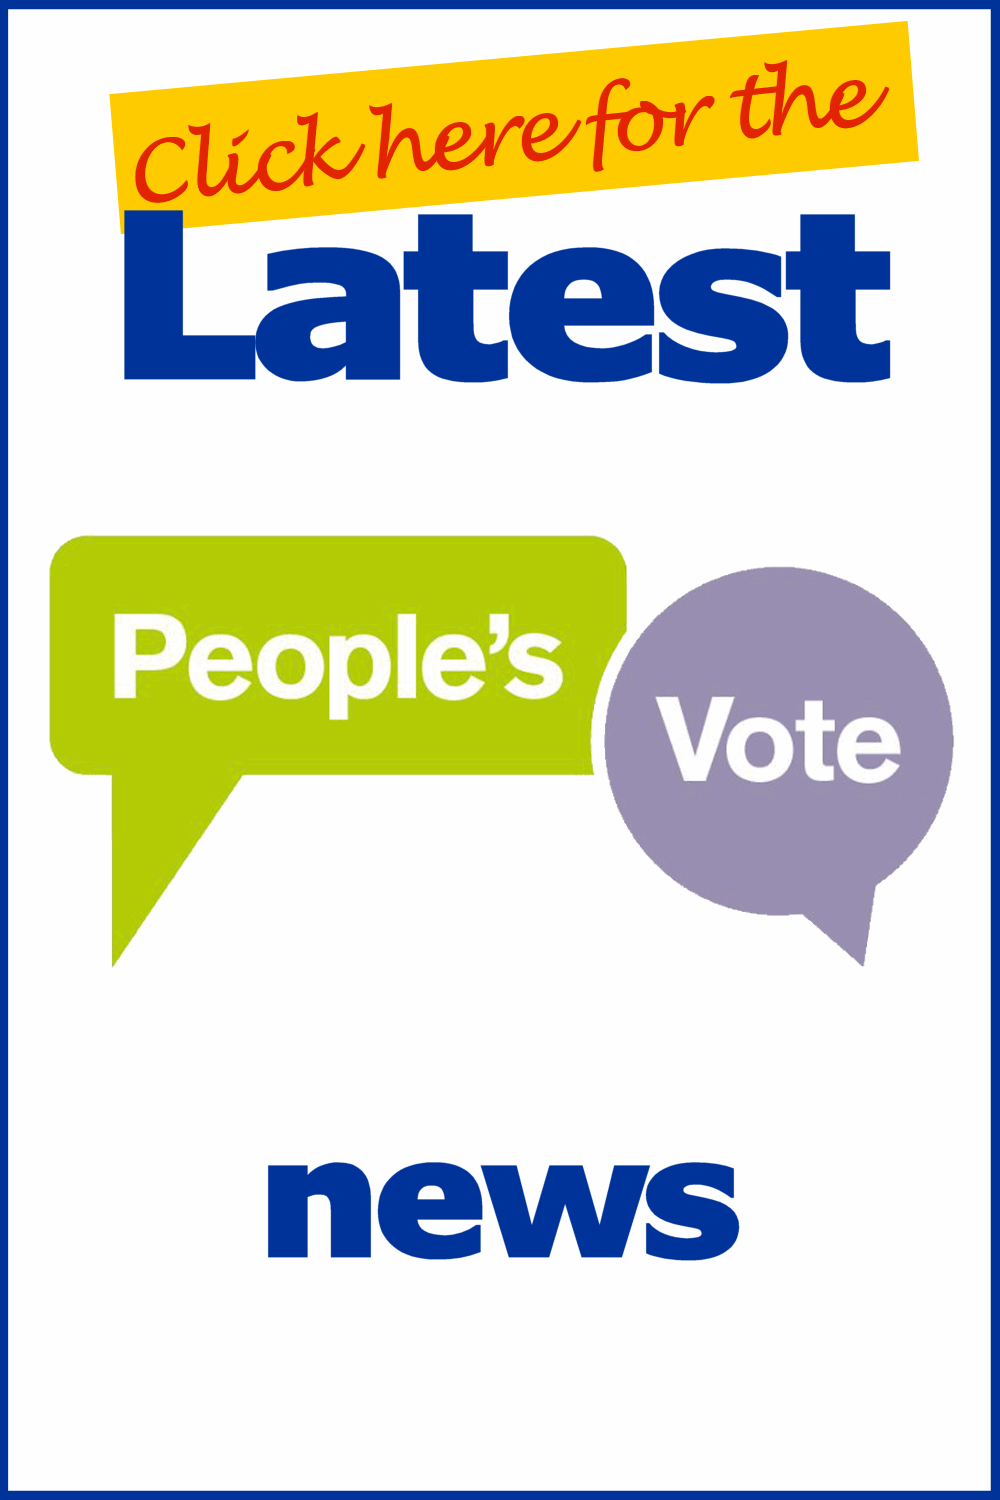 People's Vote news